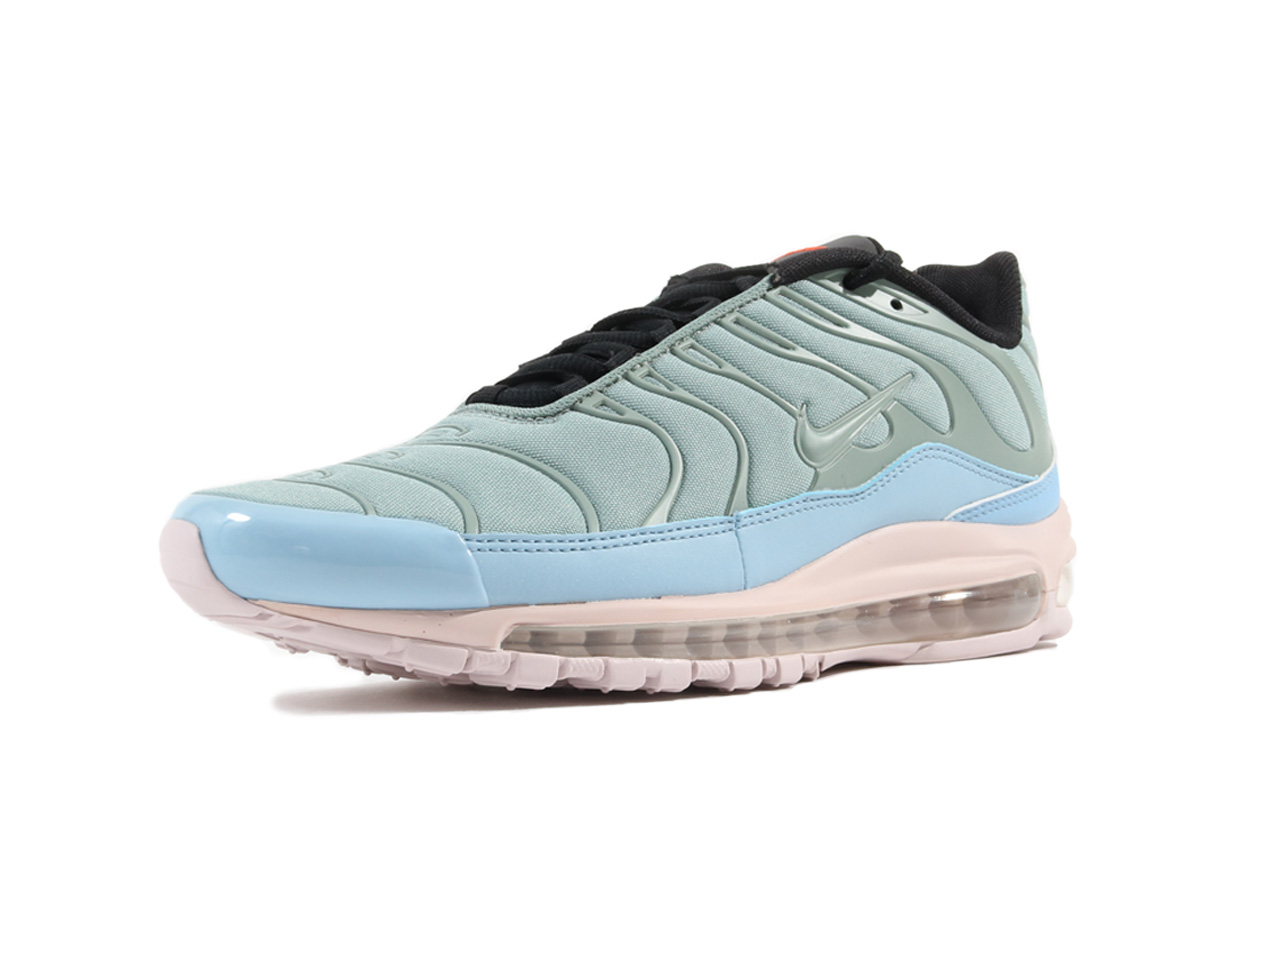 nike_air_max_97_plus_ah8144_300